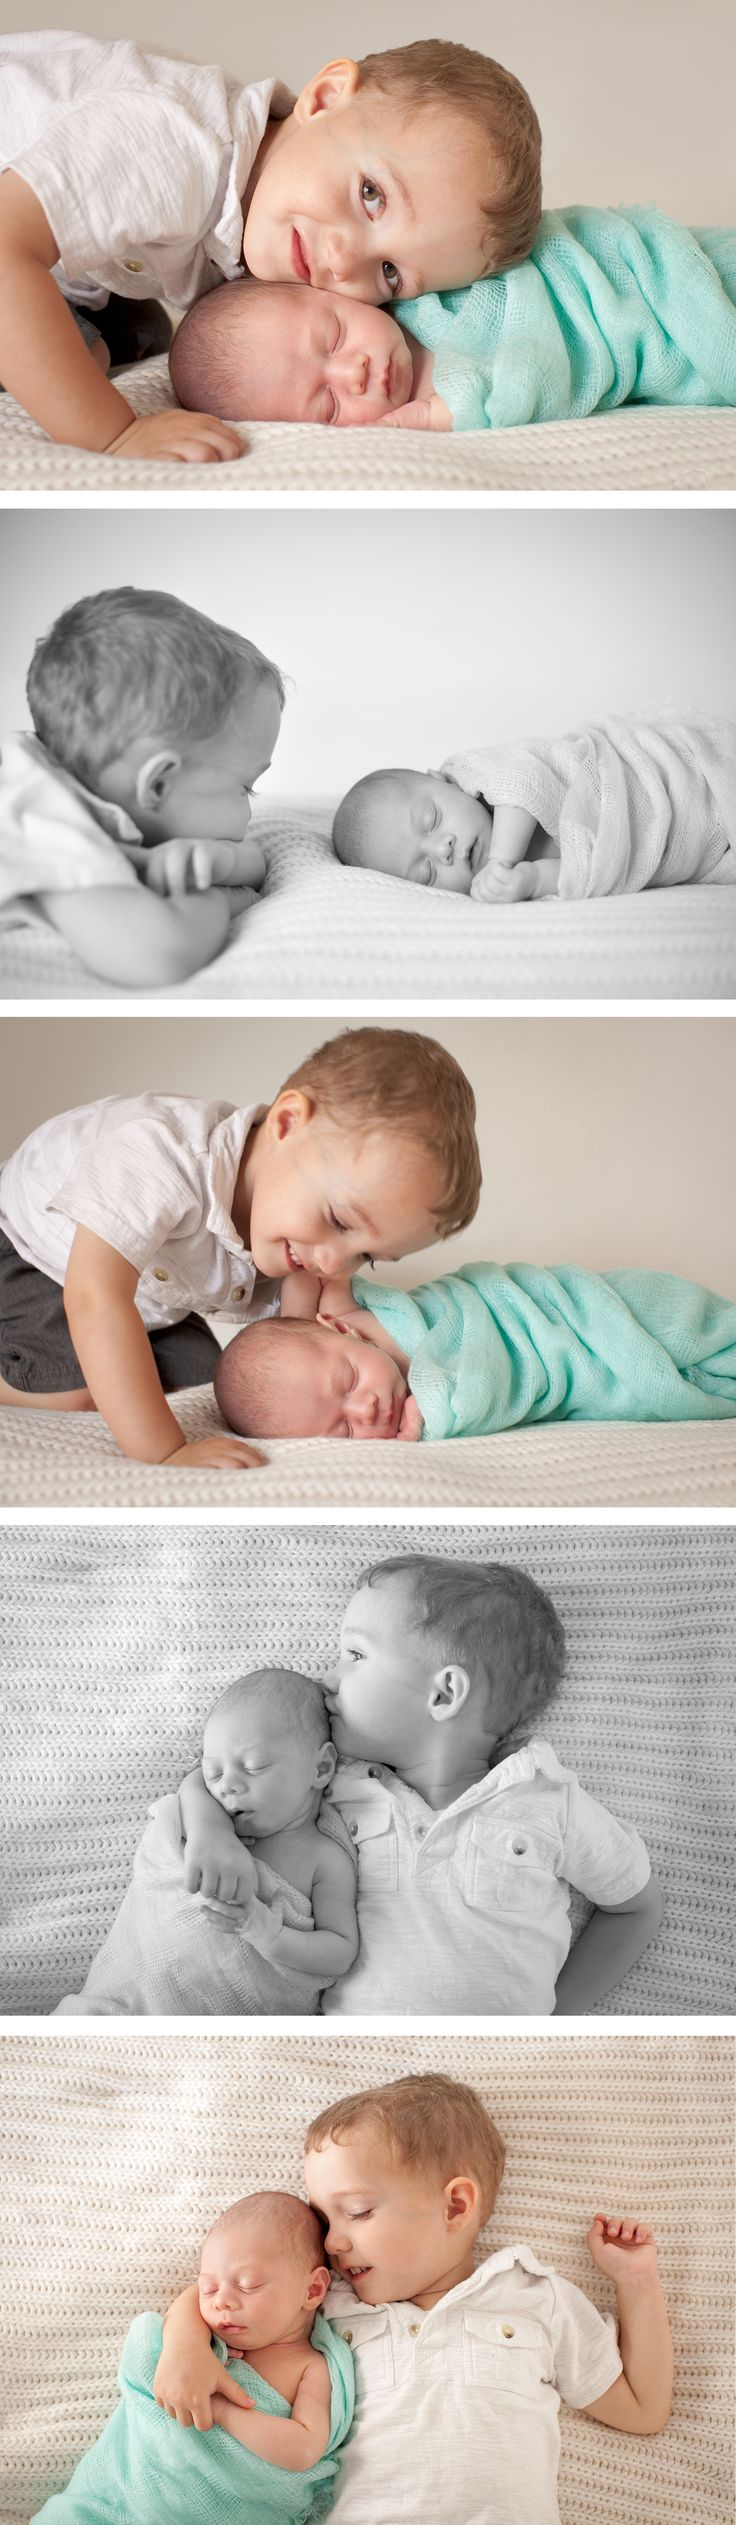 Posing for a newborn and older sibling. // McKenna Pendergrass Photography #newborn #posing #boy #baby #sibling #photography #McKennaPendergrass